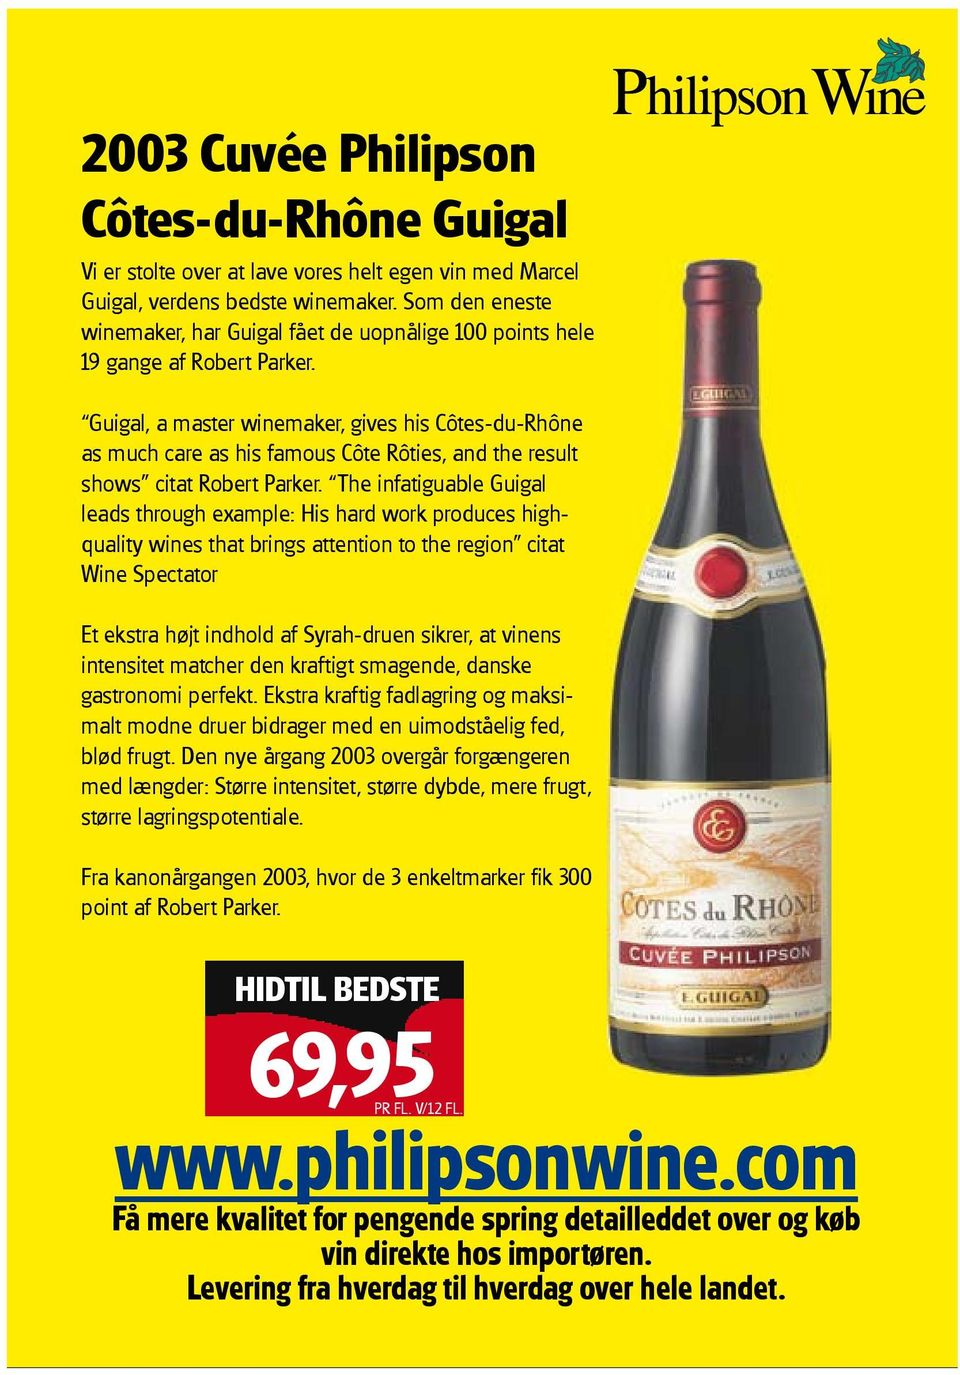 Guigal, a master winemaker, gives his Côtes-du-Rhône as much care as his famous Côte Rôties, and the result shows citat Robert Parker.